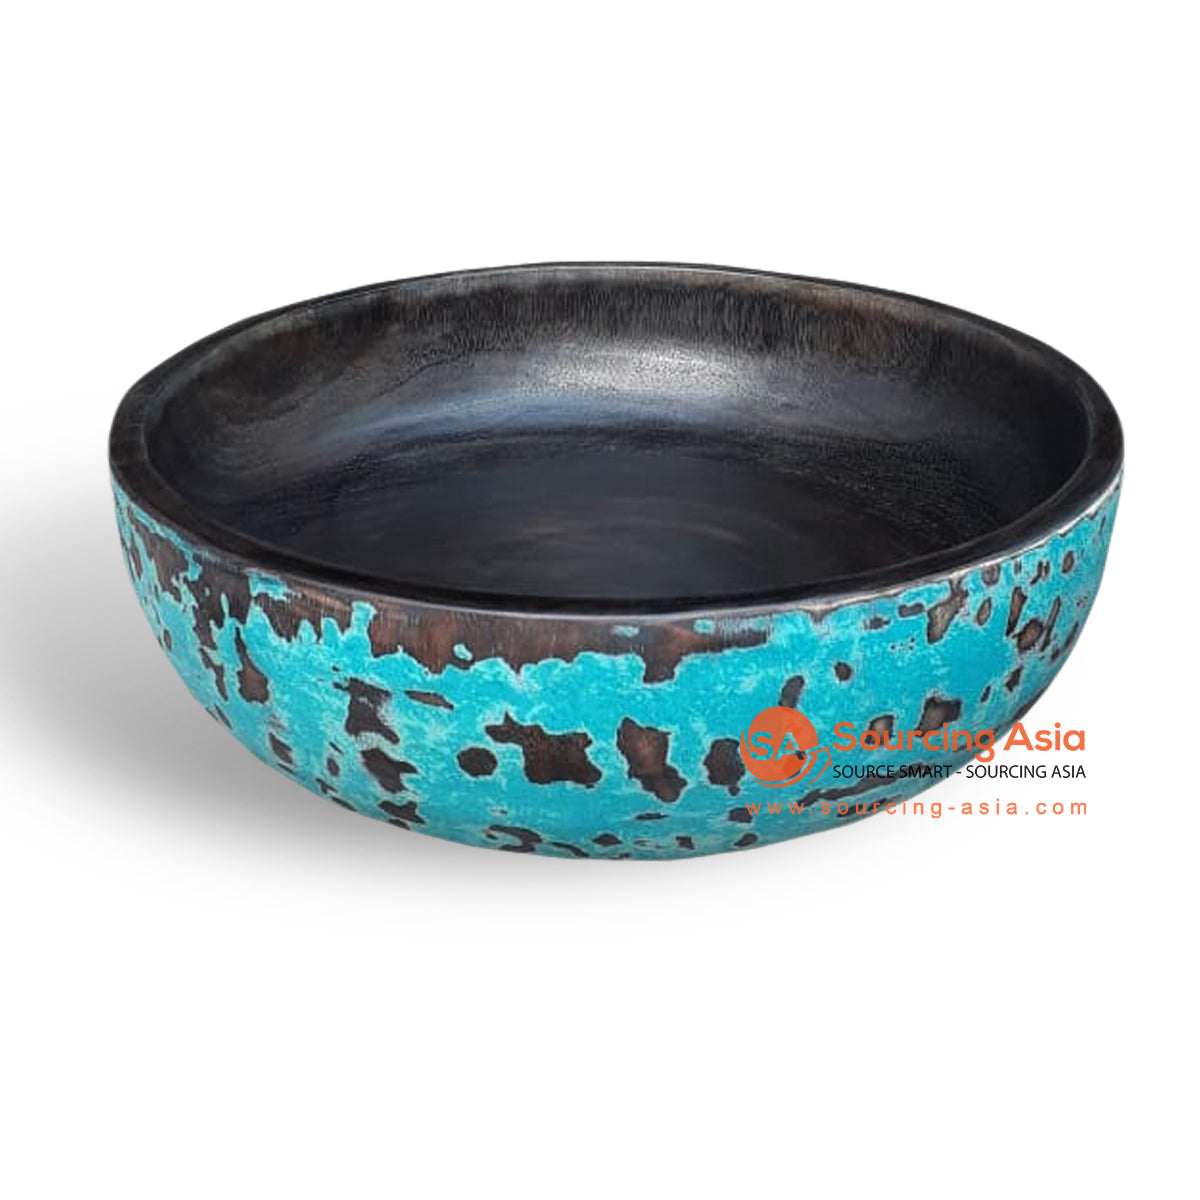 MENT5025 MENTAWI WOODEN BOWL PAINTED